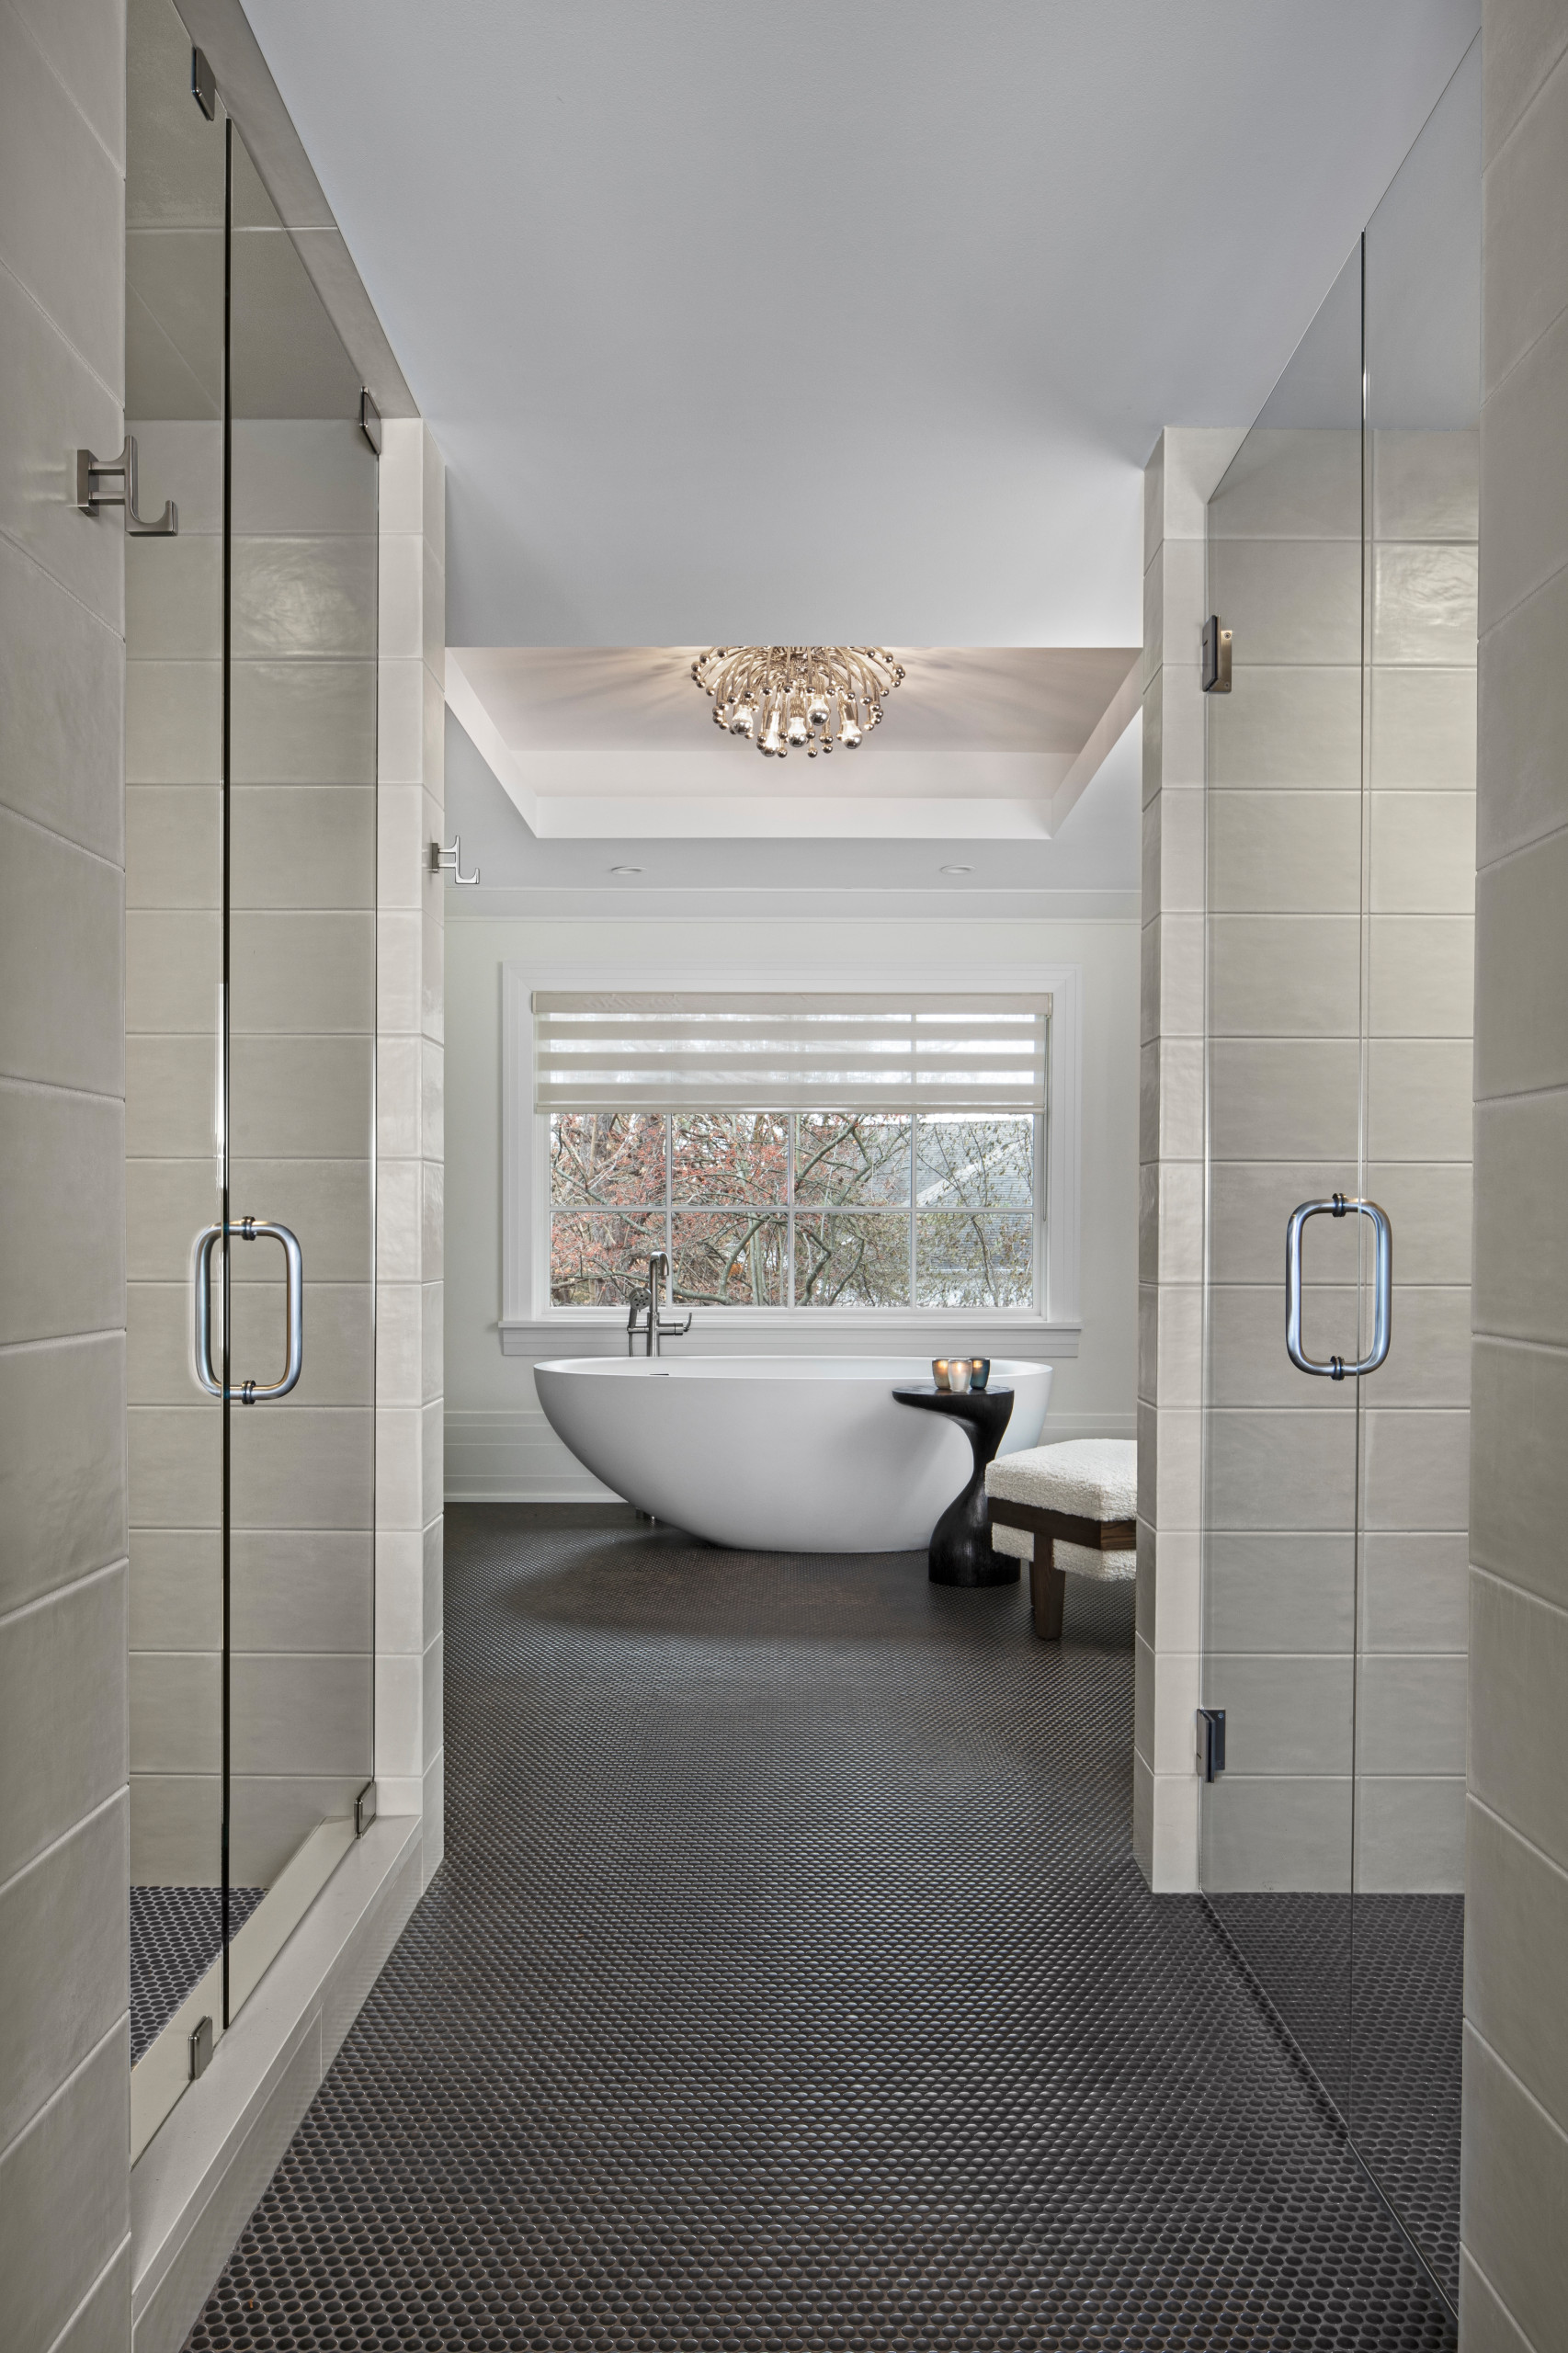 The experience of entering the master bath for Her is one filled with elegance and drama. The copper penny round tile floor leads past a pair of Euro Glass doors, with a shower room to the left and a